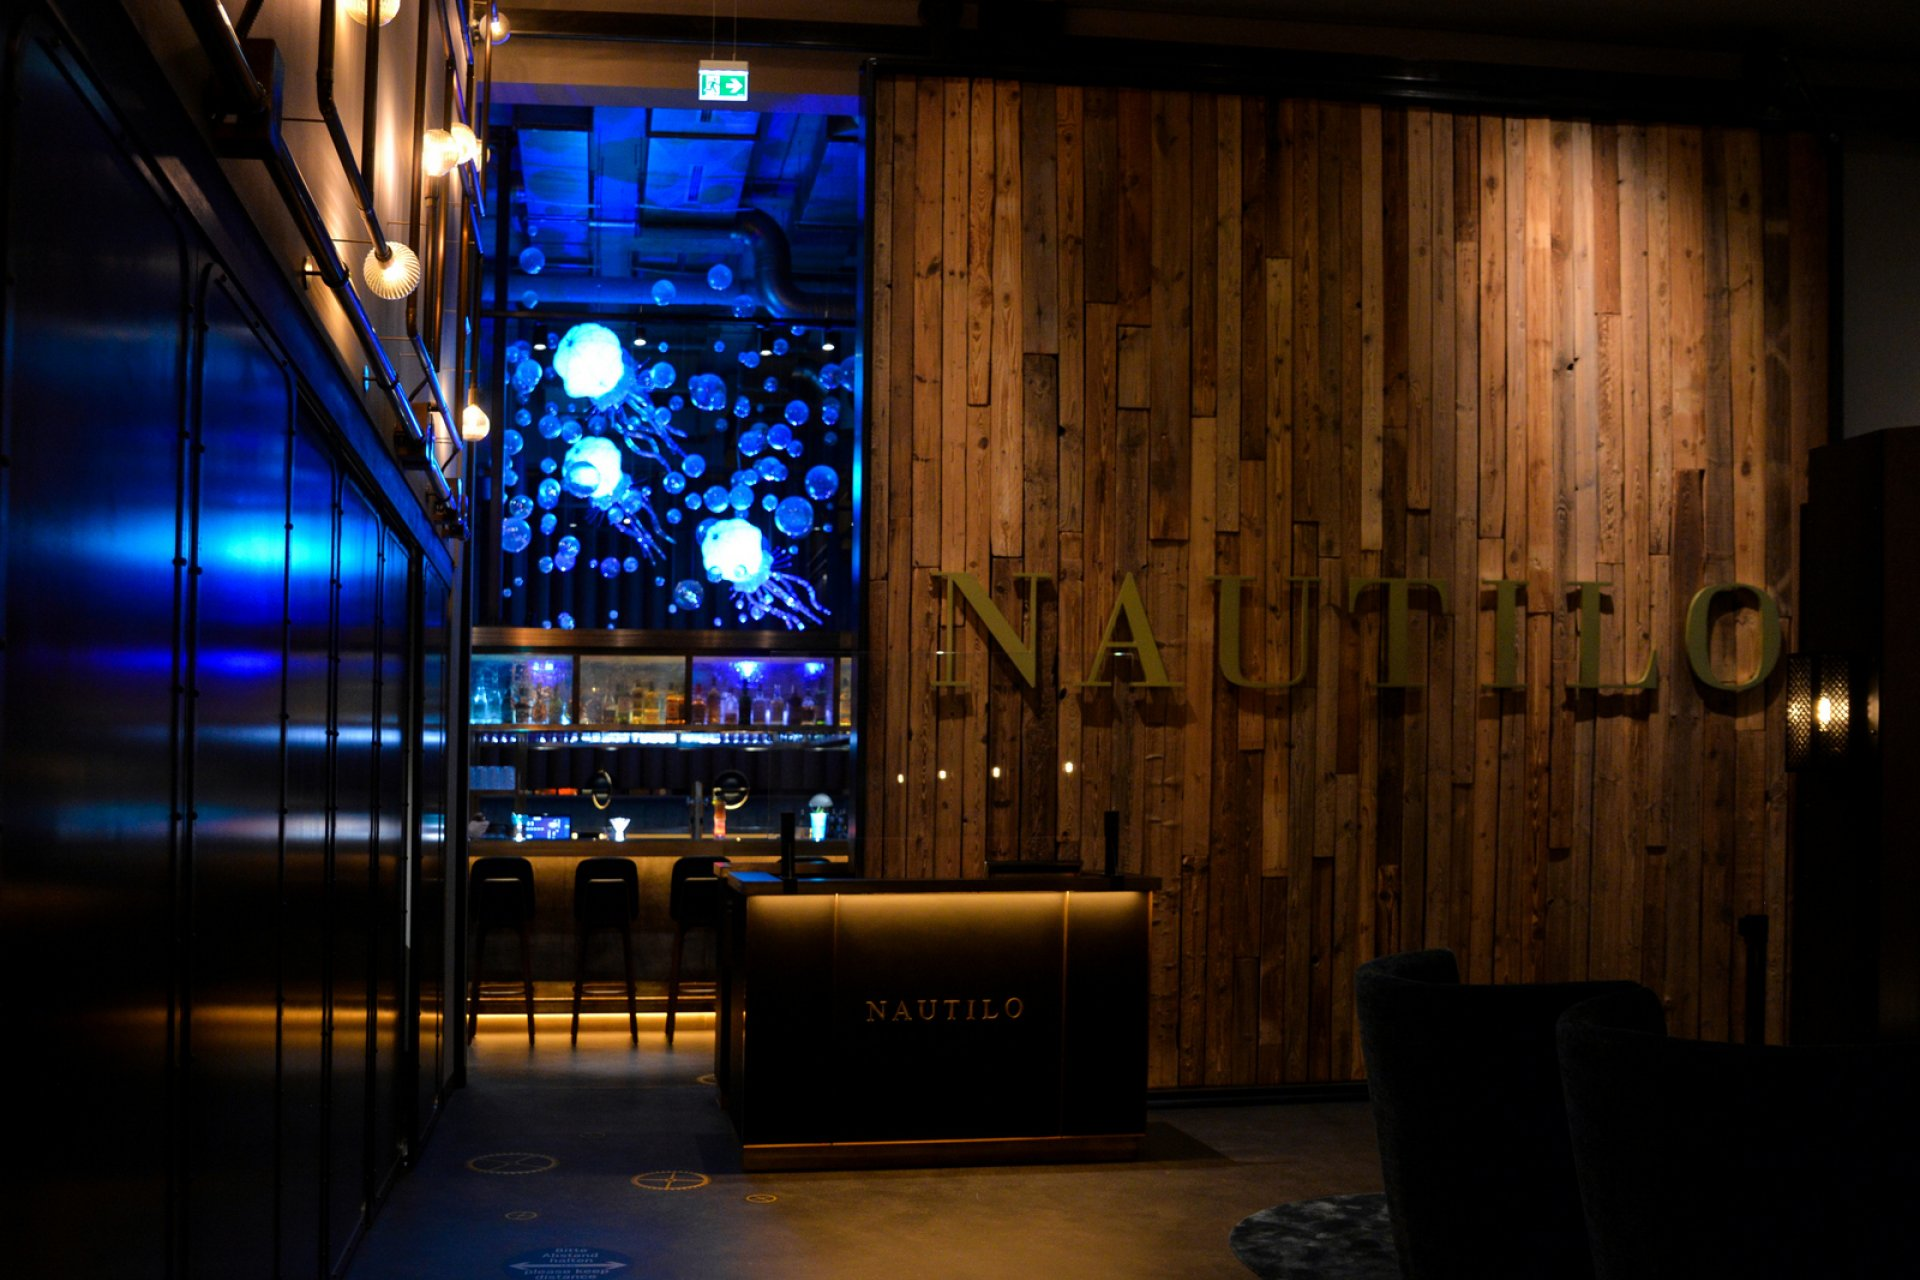 Nautilo restaurant with international specialties